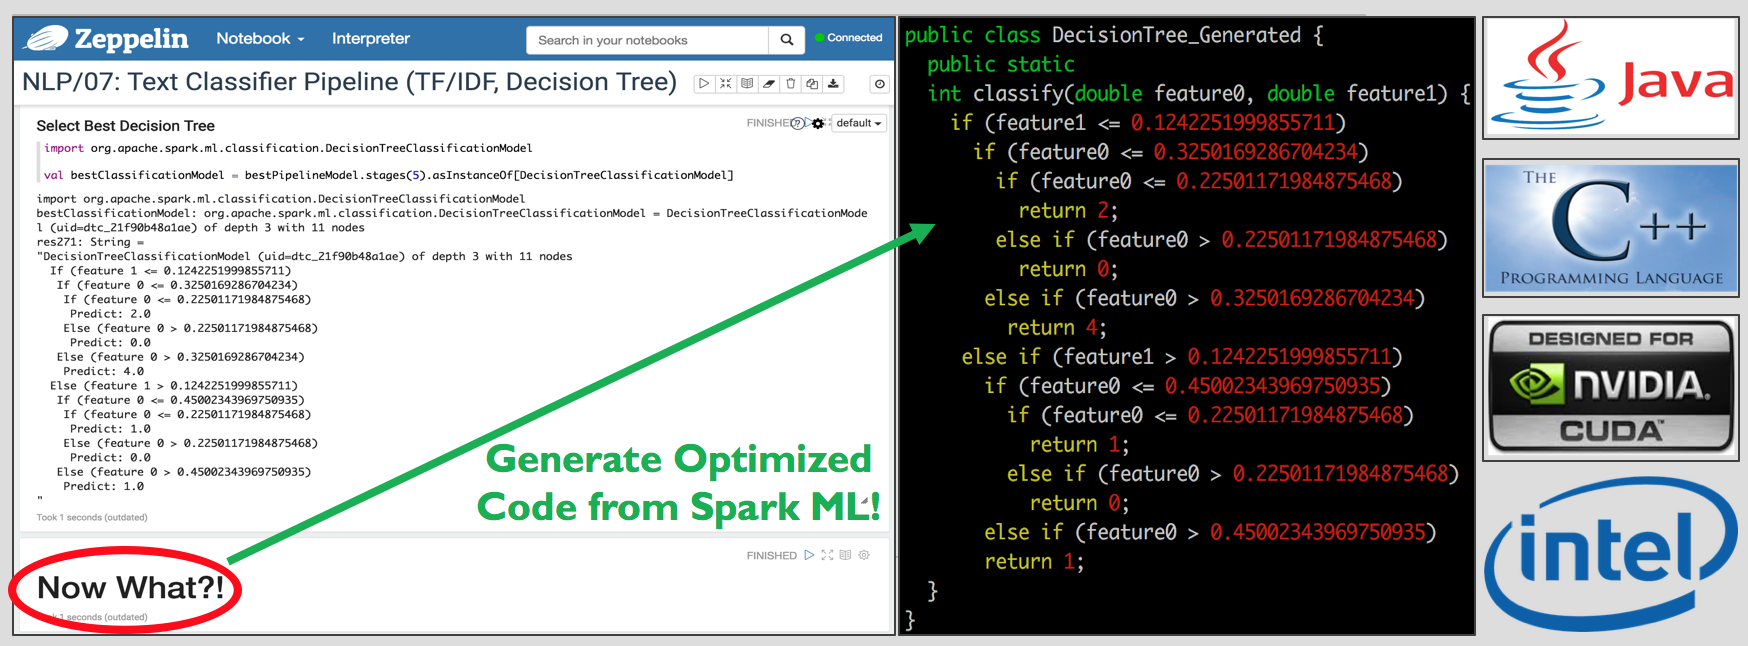 Generate and Optimize Spark ML Model